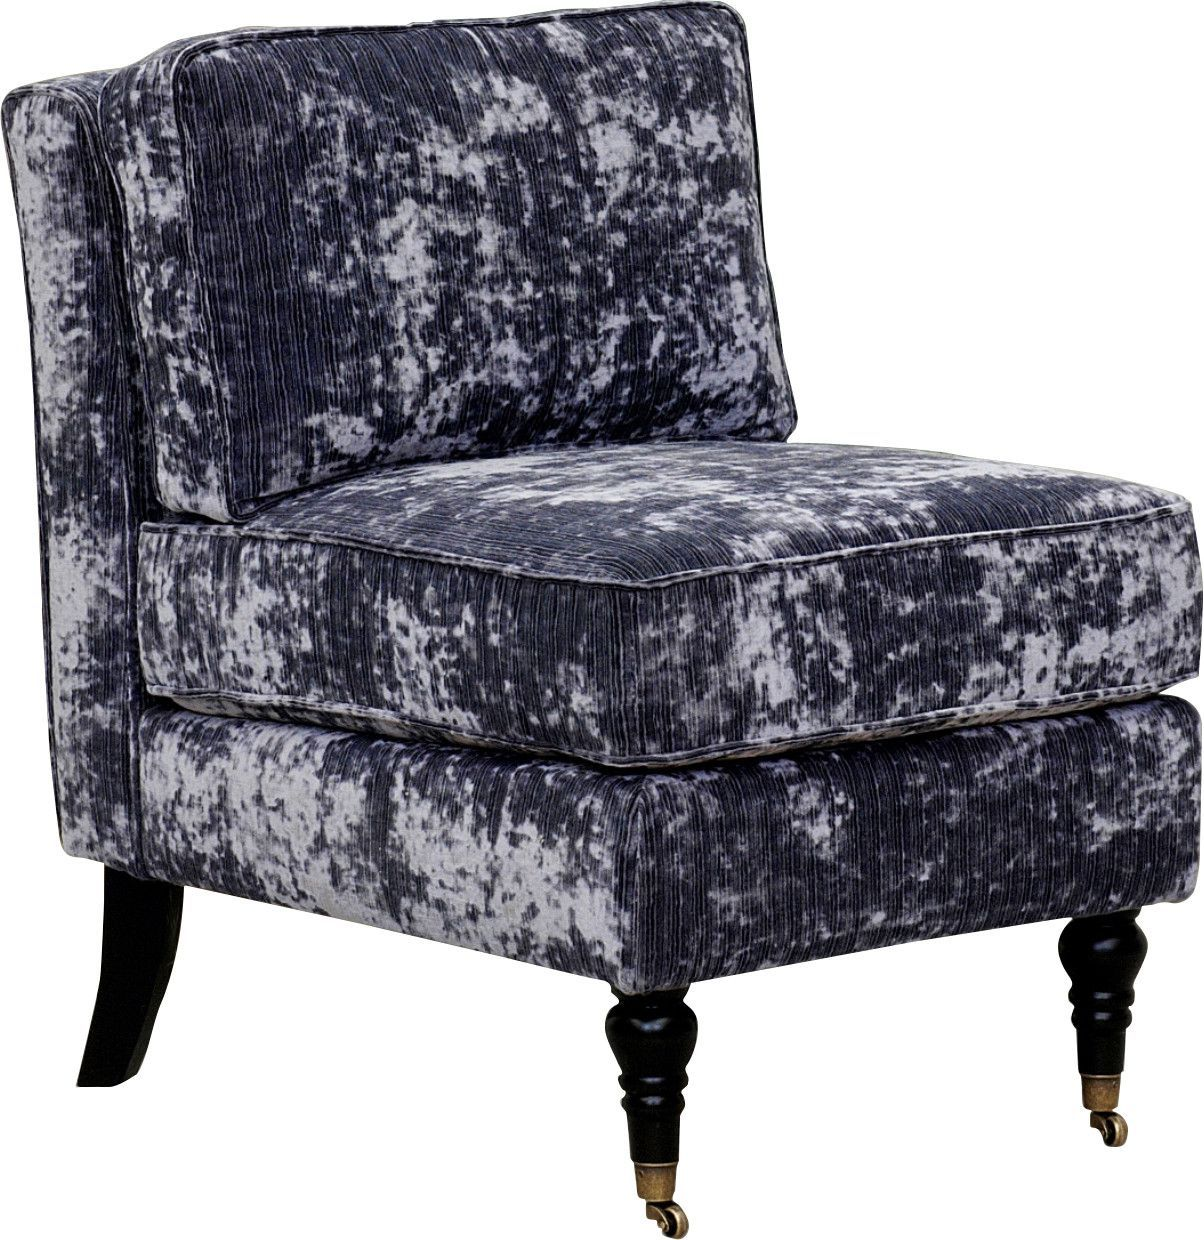 Velvet Slipper Chair Gandhi Slipper Chair Products Velvet Accent Chair Accent